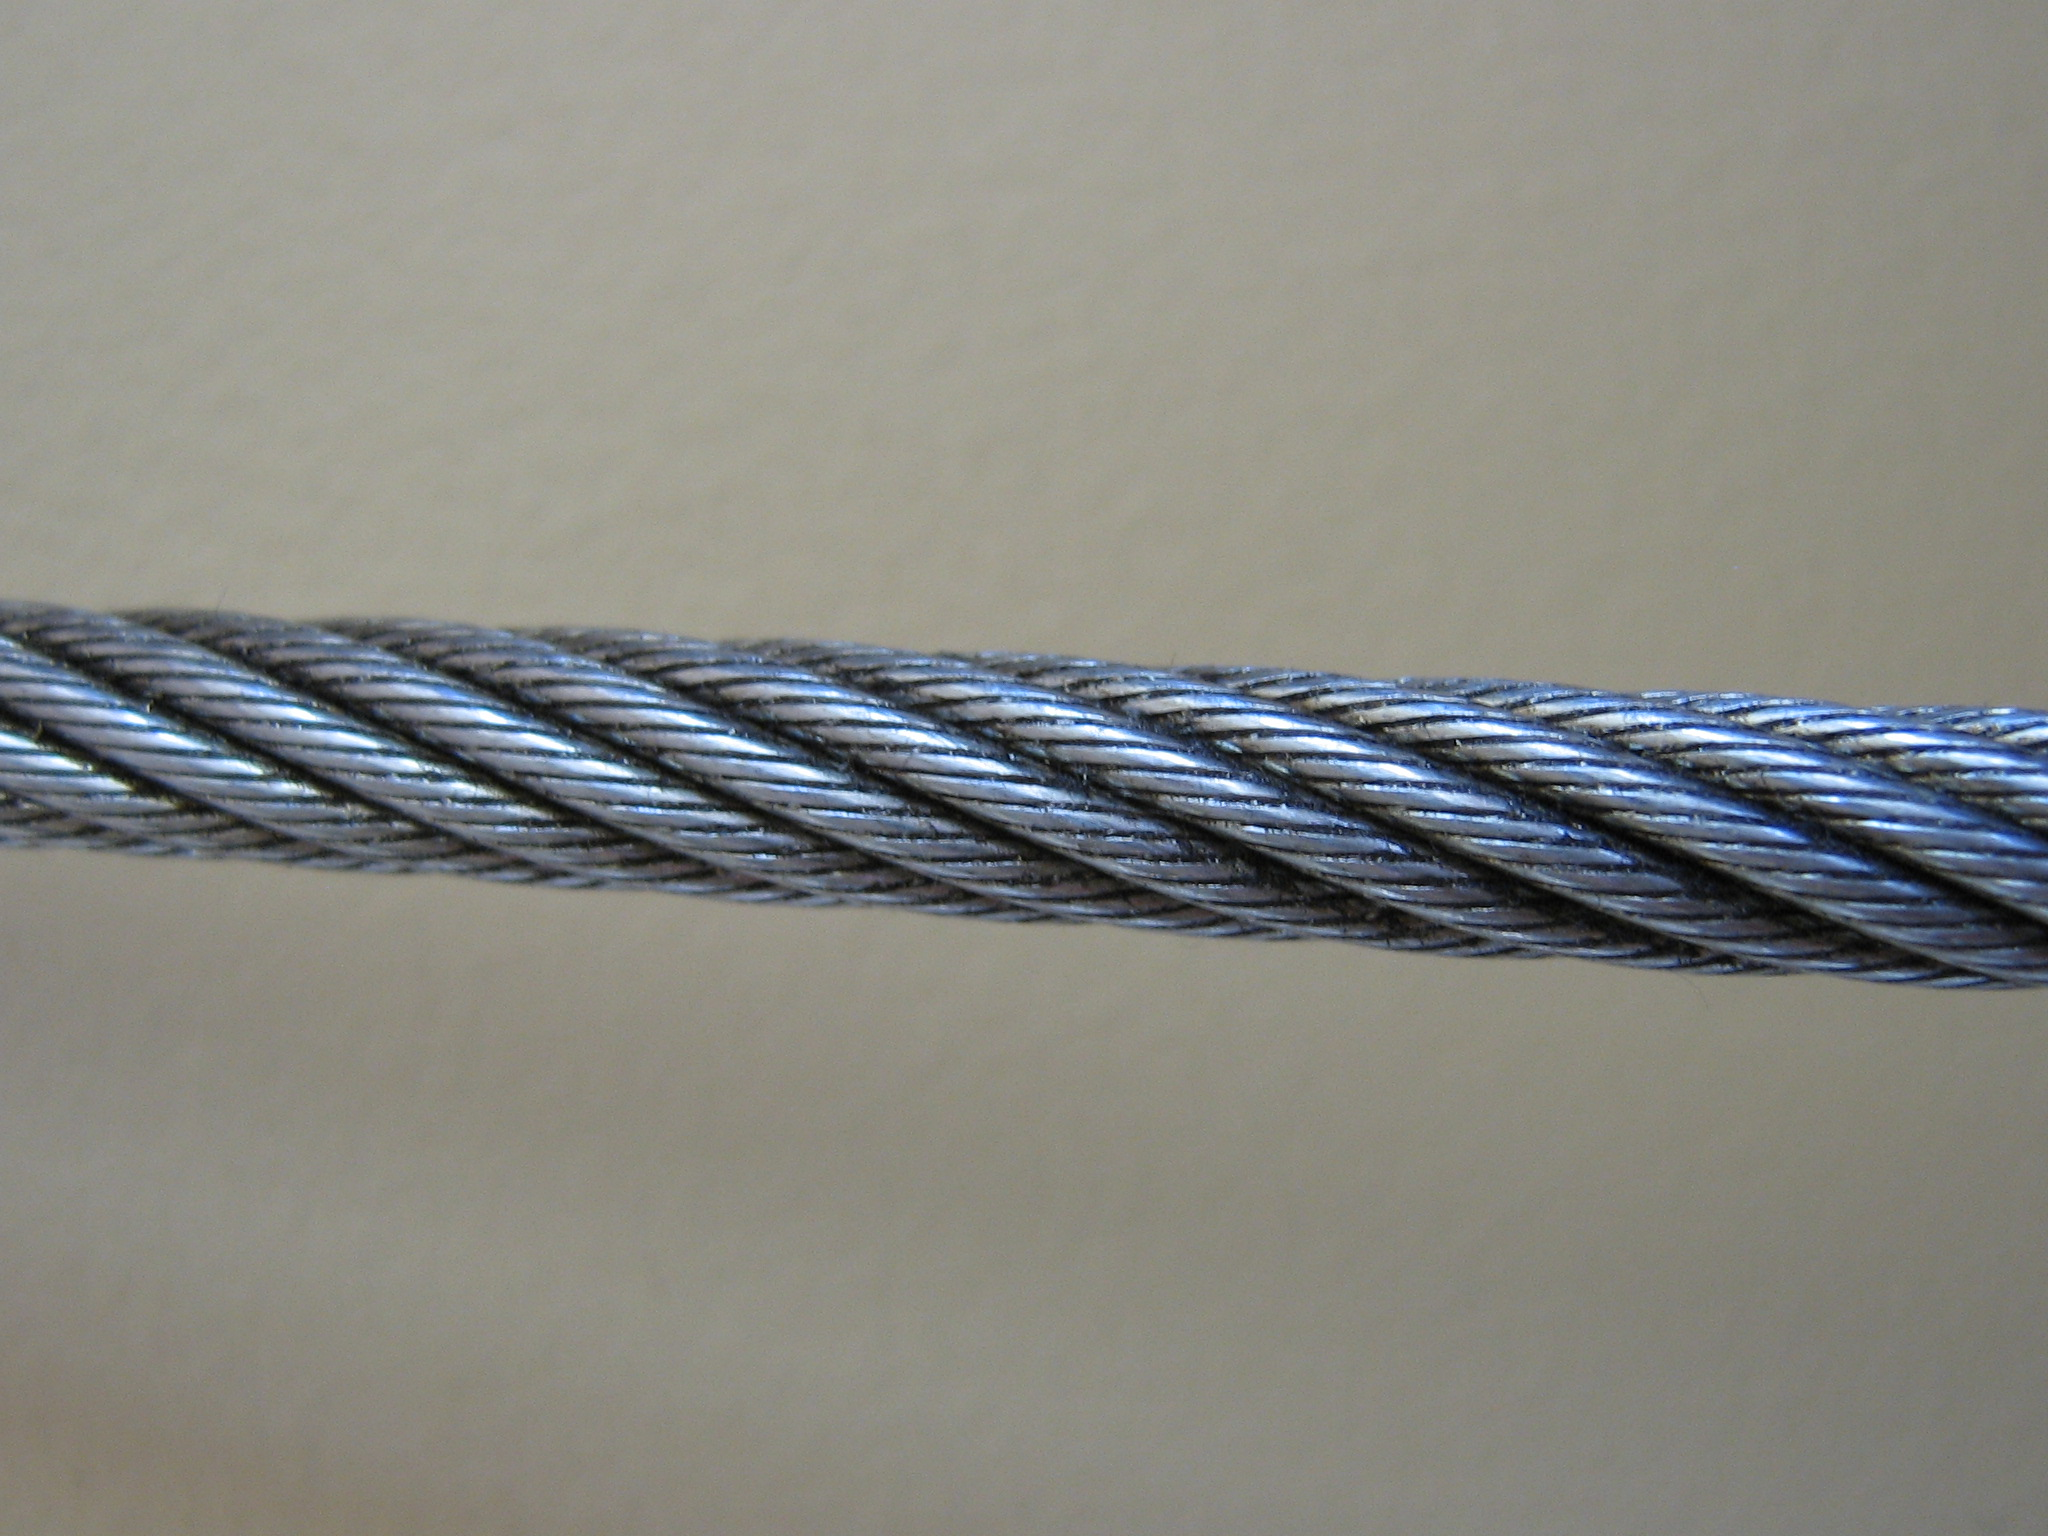 compacted rope